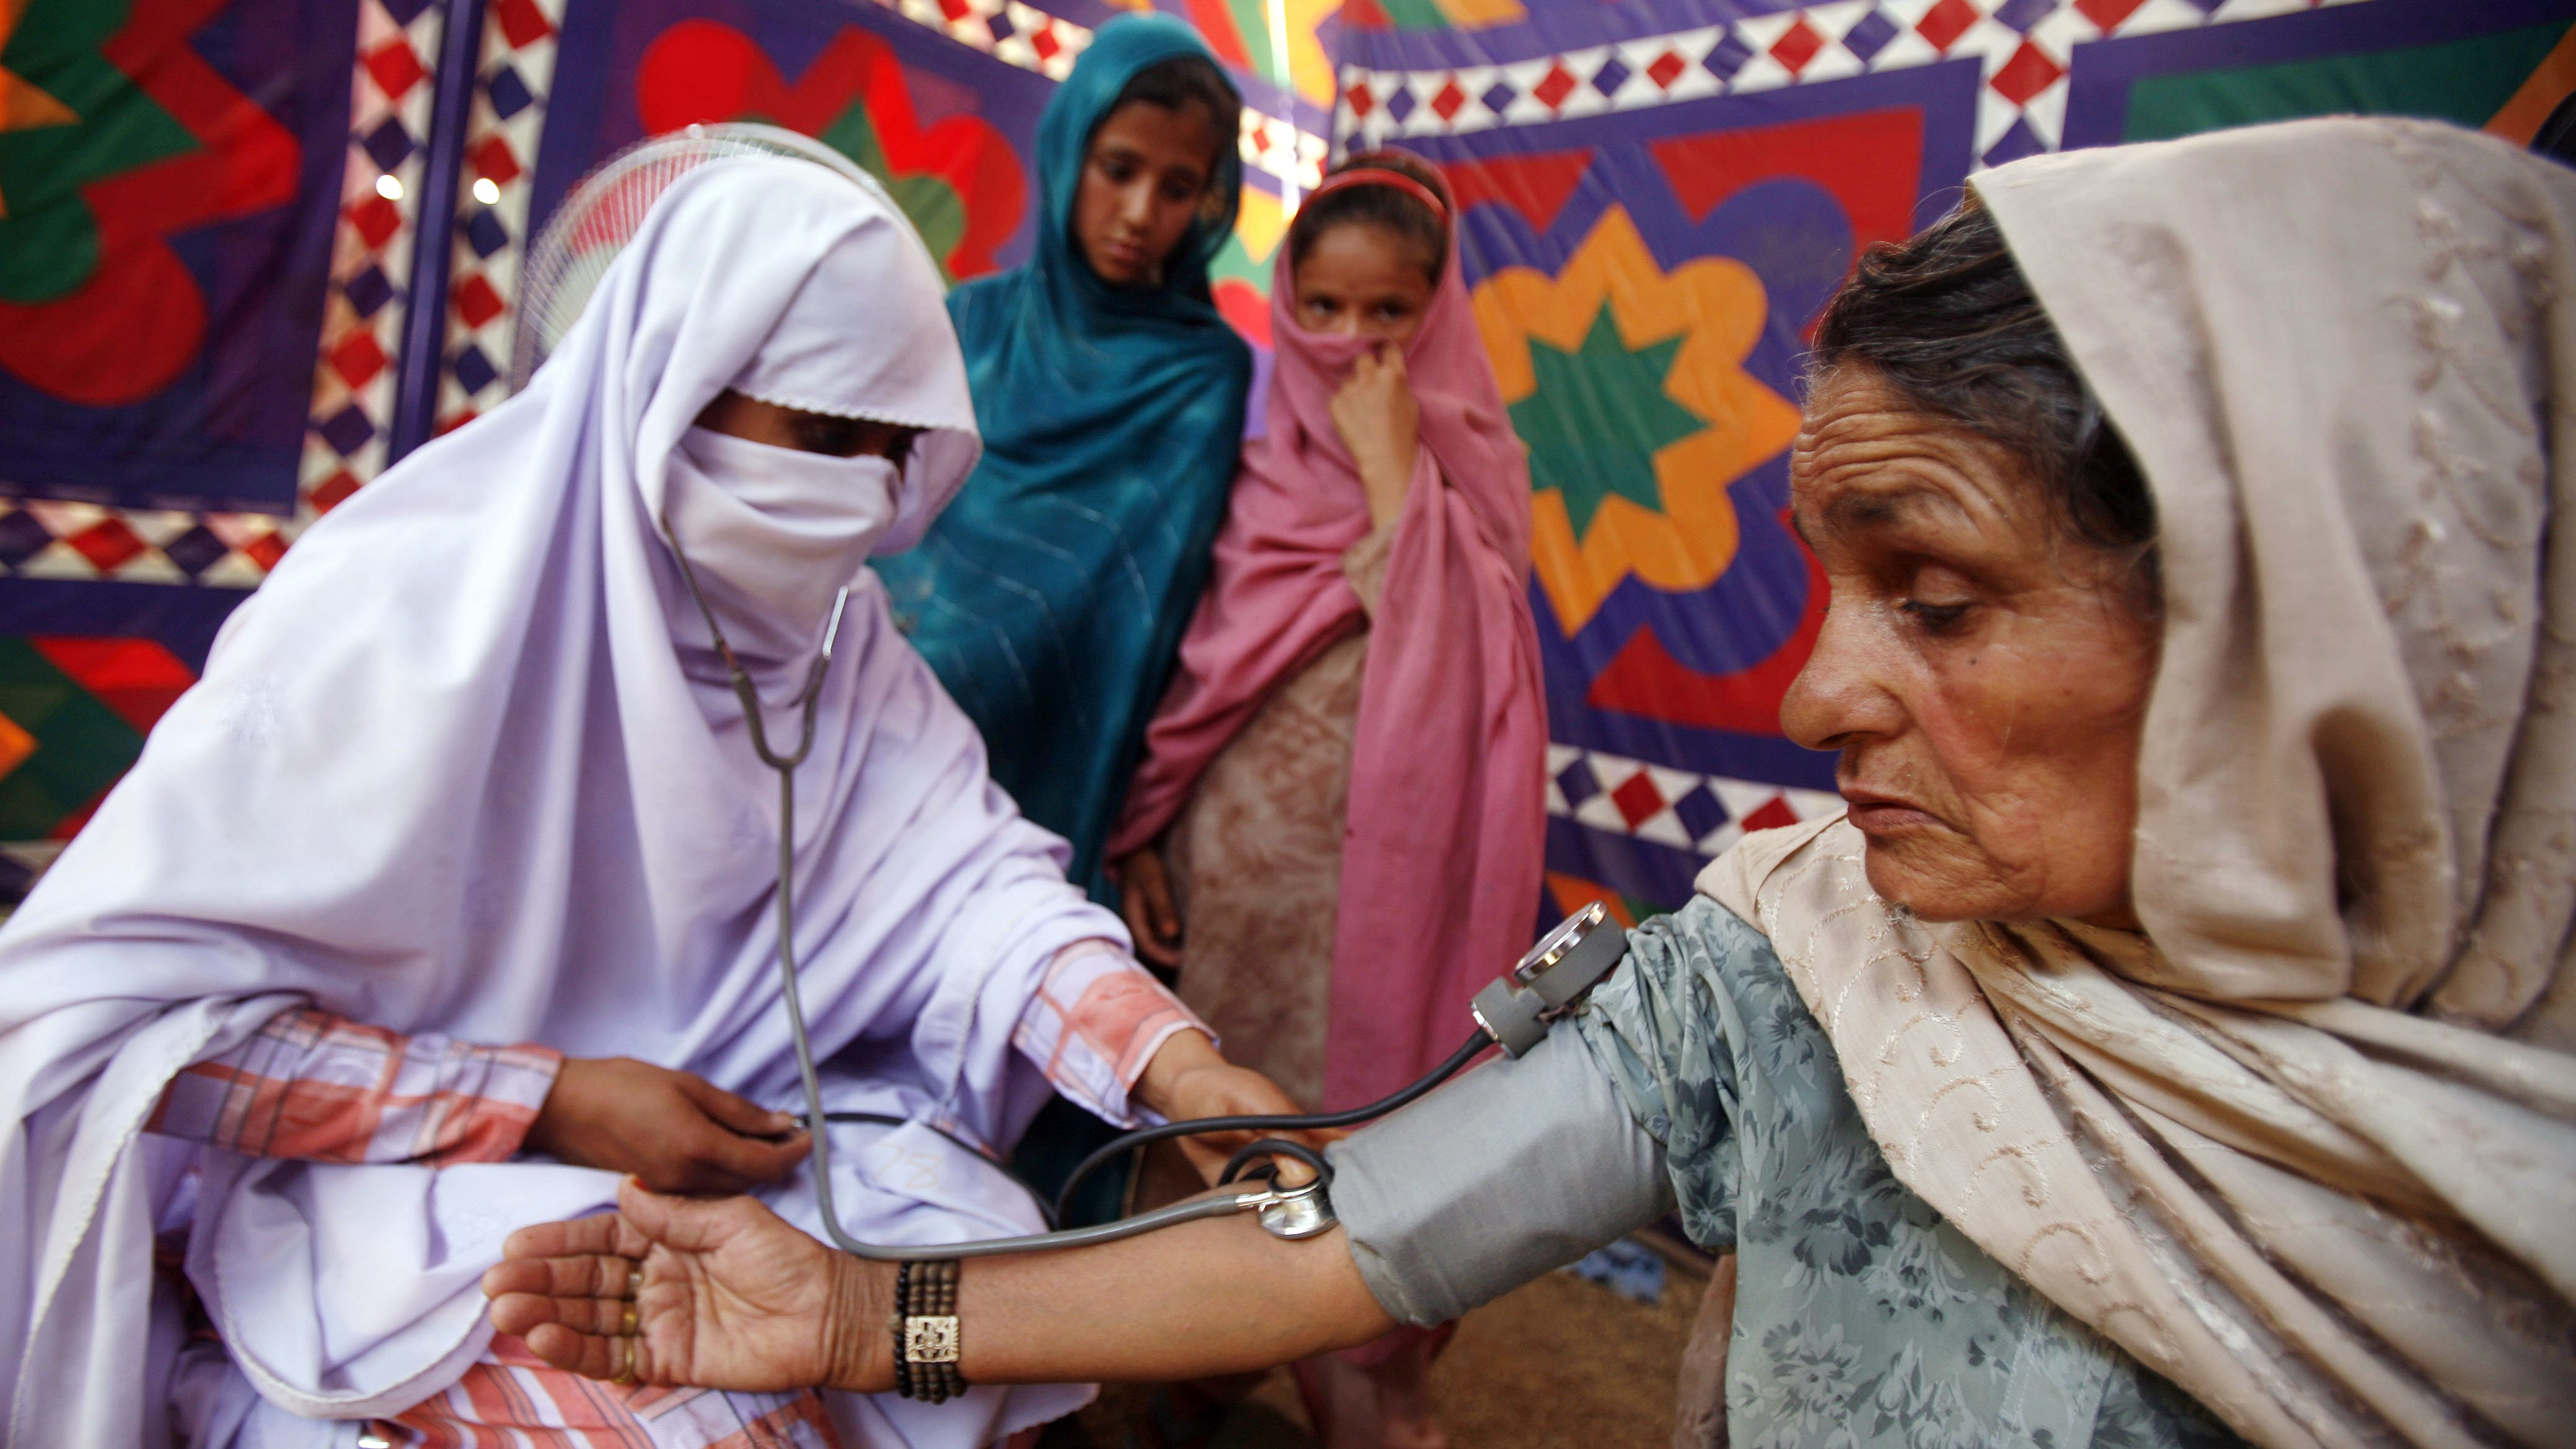 A doctor, left, treats a woman at a medical clinic in a tent at the Sheikh Yasin refugee camp at Mardan, in northwest Pakistan, Monday, May 18, 2009.  More than a million Pakistanis have fled fighting between the army and Taliban militants in the Swat Valley, with around 100,000 living in camps near the town of Mardan, south of the battle zone. (AP Photo/Greg Baker)